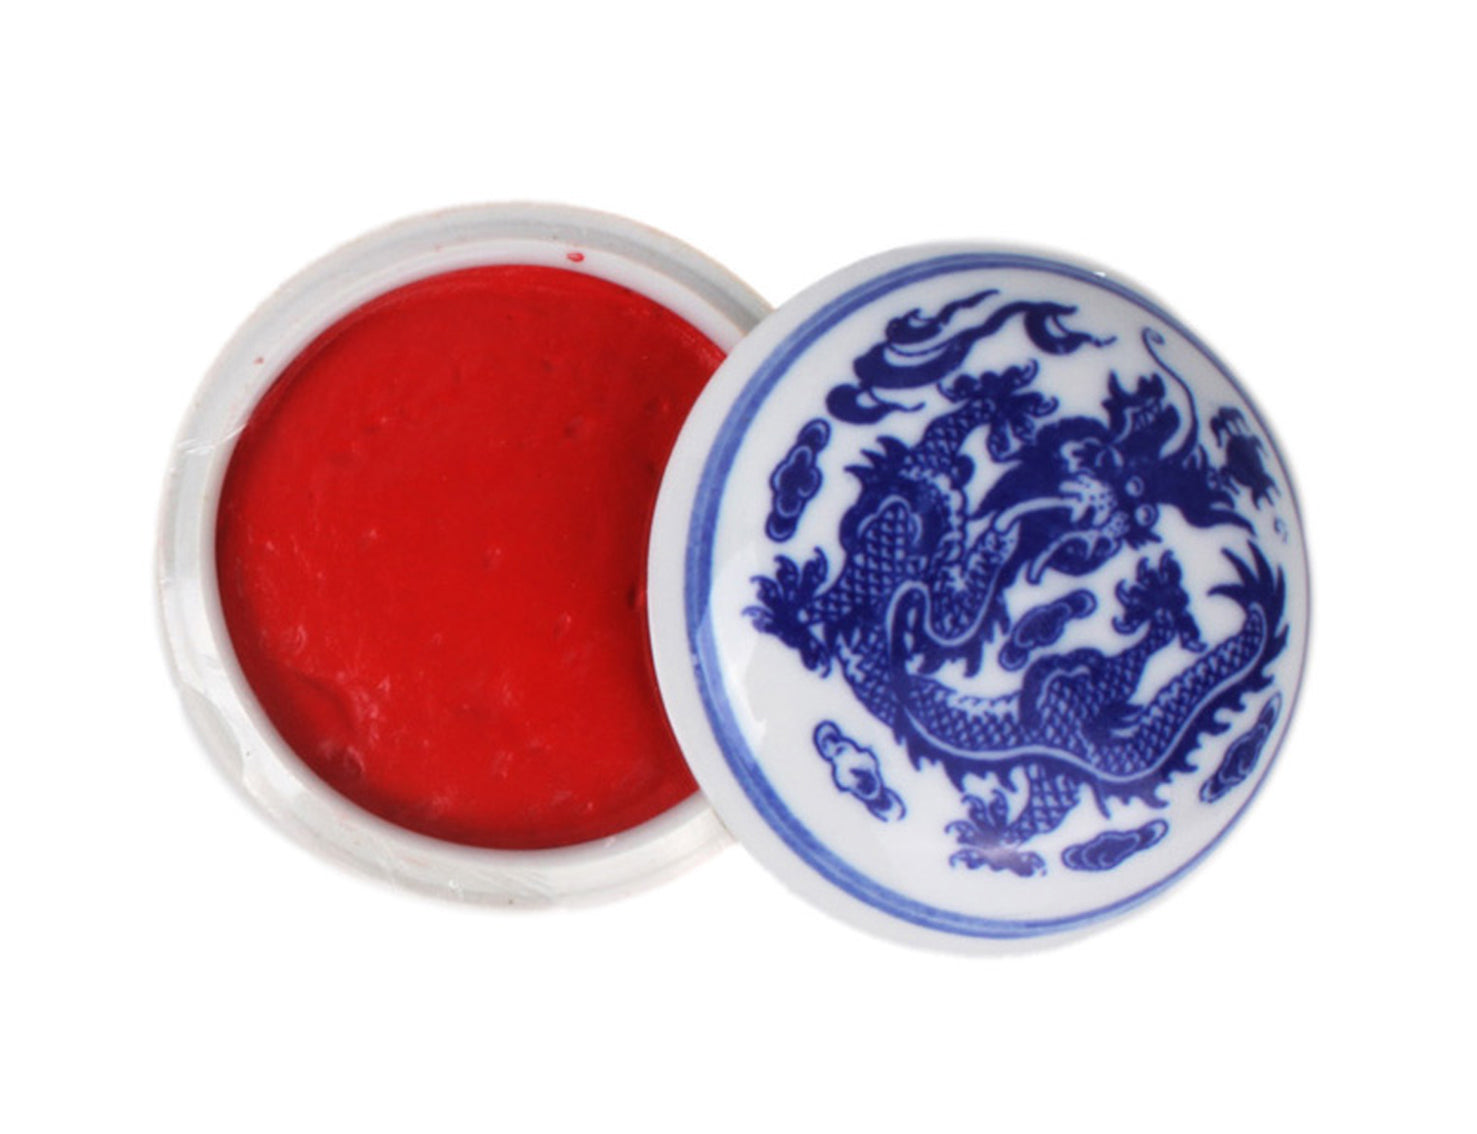 Bright Chinese Seal Paste with Gift Box and Container